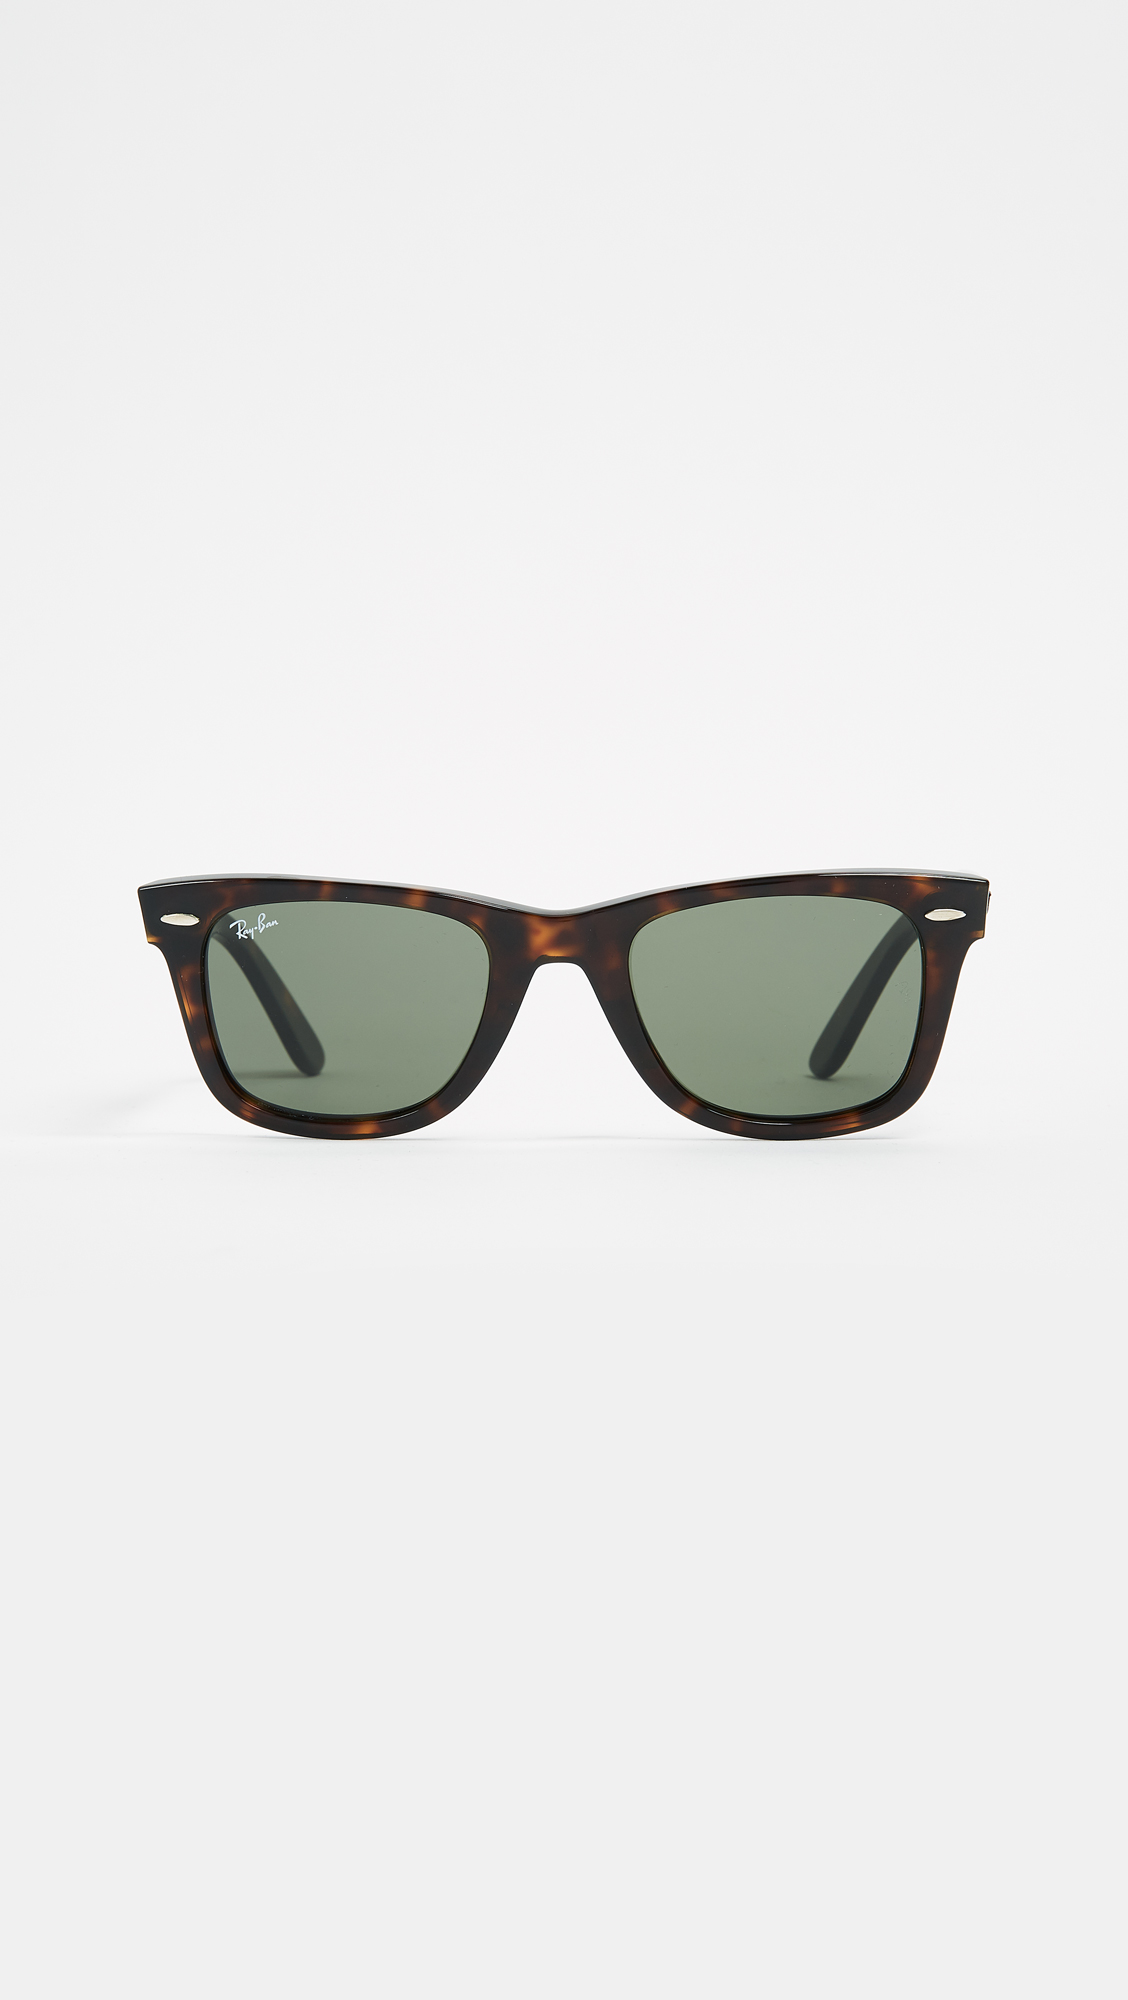 eefbf05323 Ray-Ban RB2140 Original Wayfarer Sunglasses | SHOPBOP